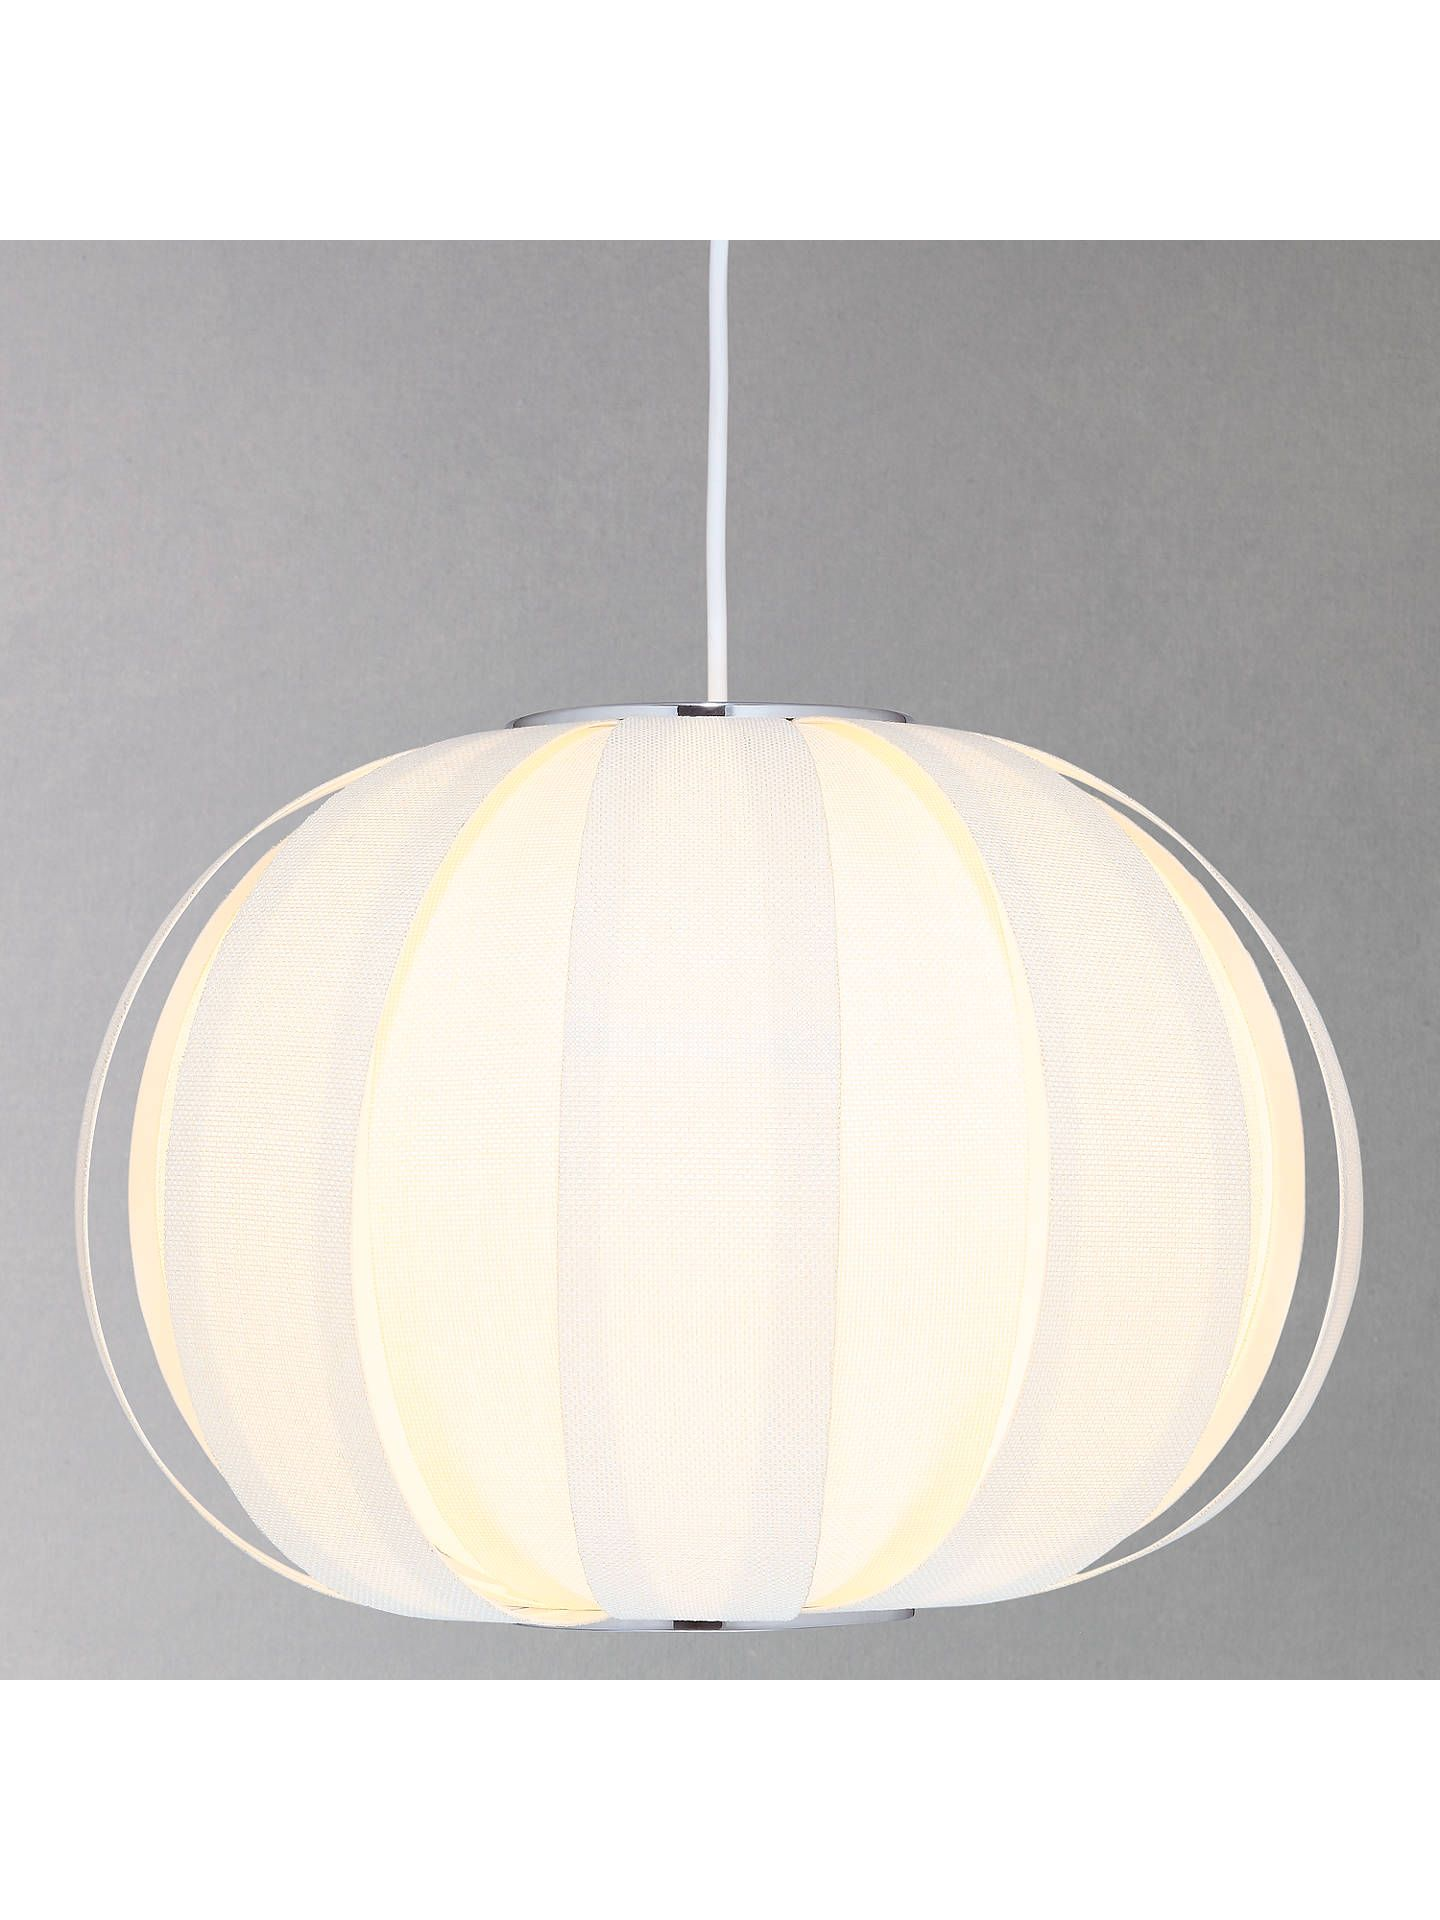 John Lewis Partners Sumet Panels Easy To Fit Ceiling Shade Cream Ceiling Shades Ceiling Lamp Shades Blue Lamp Shade